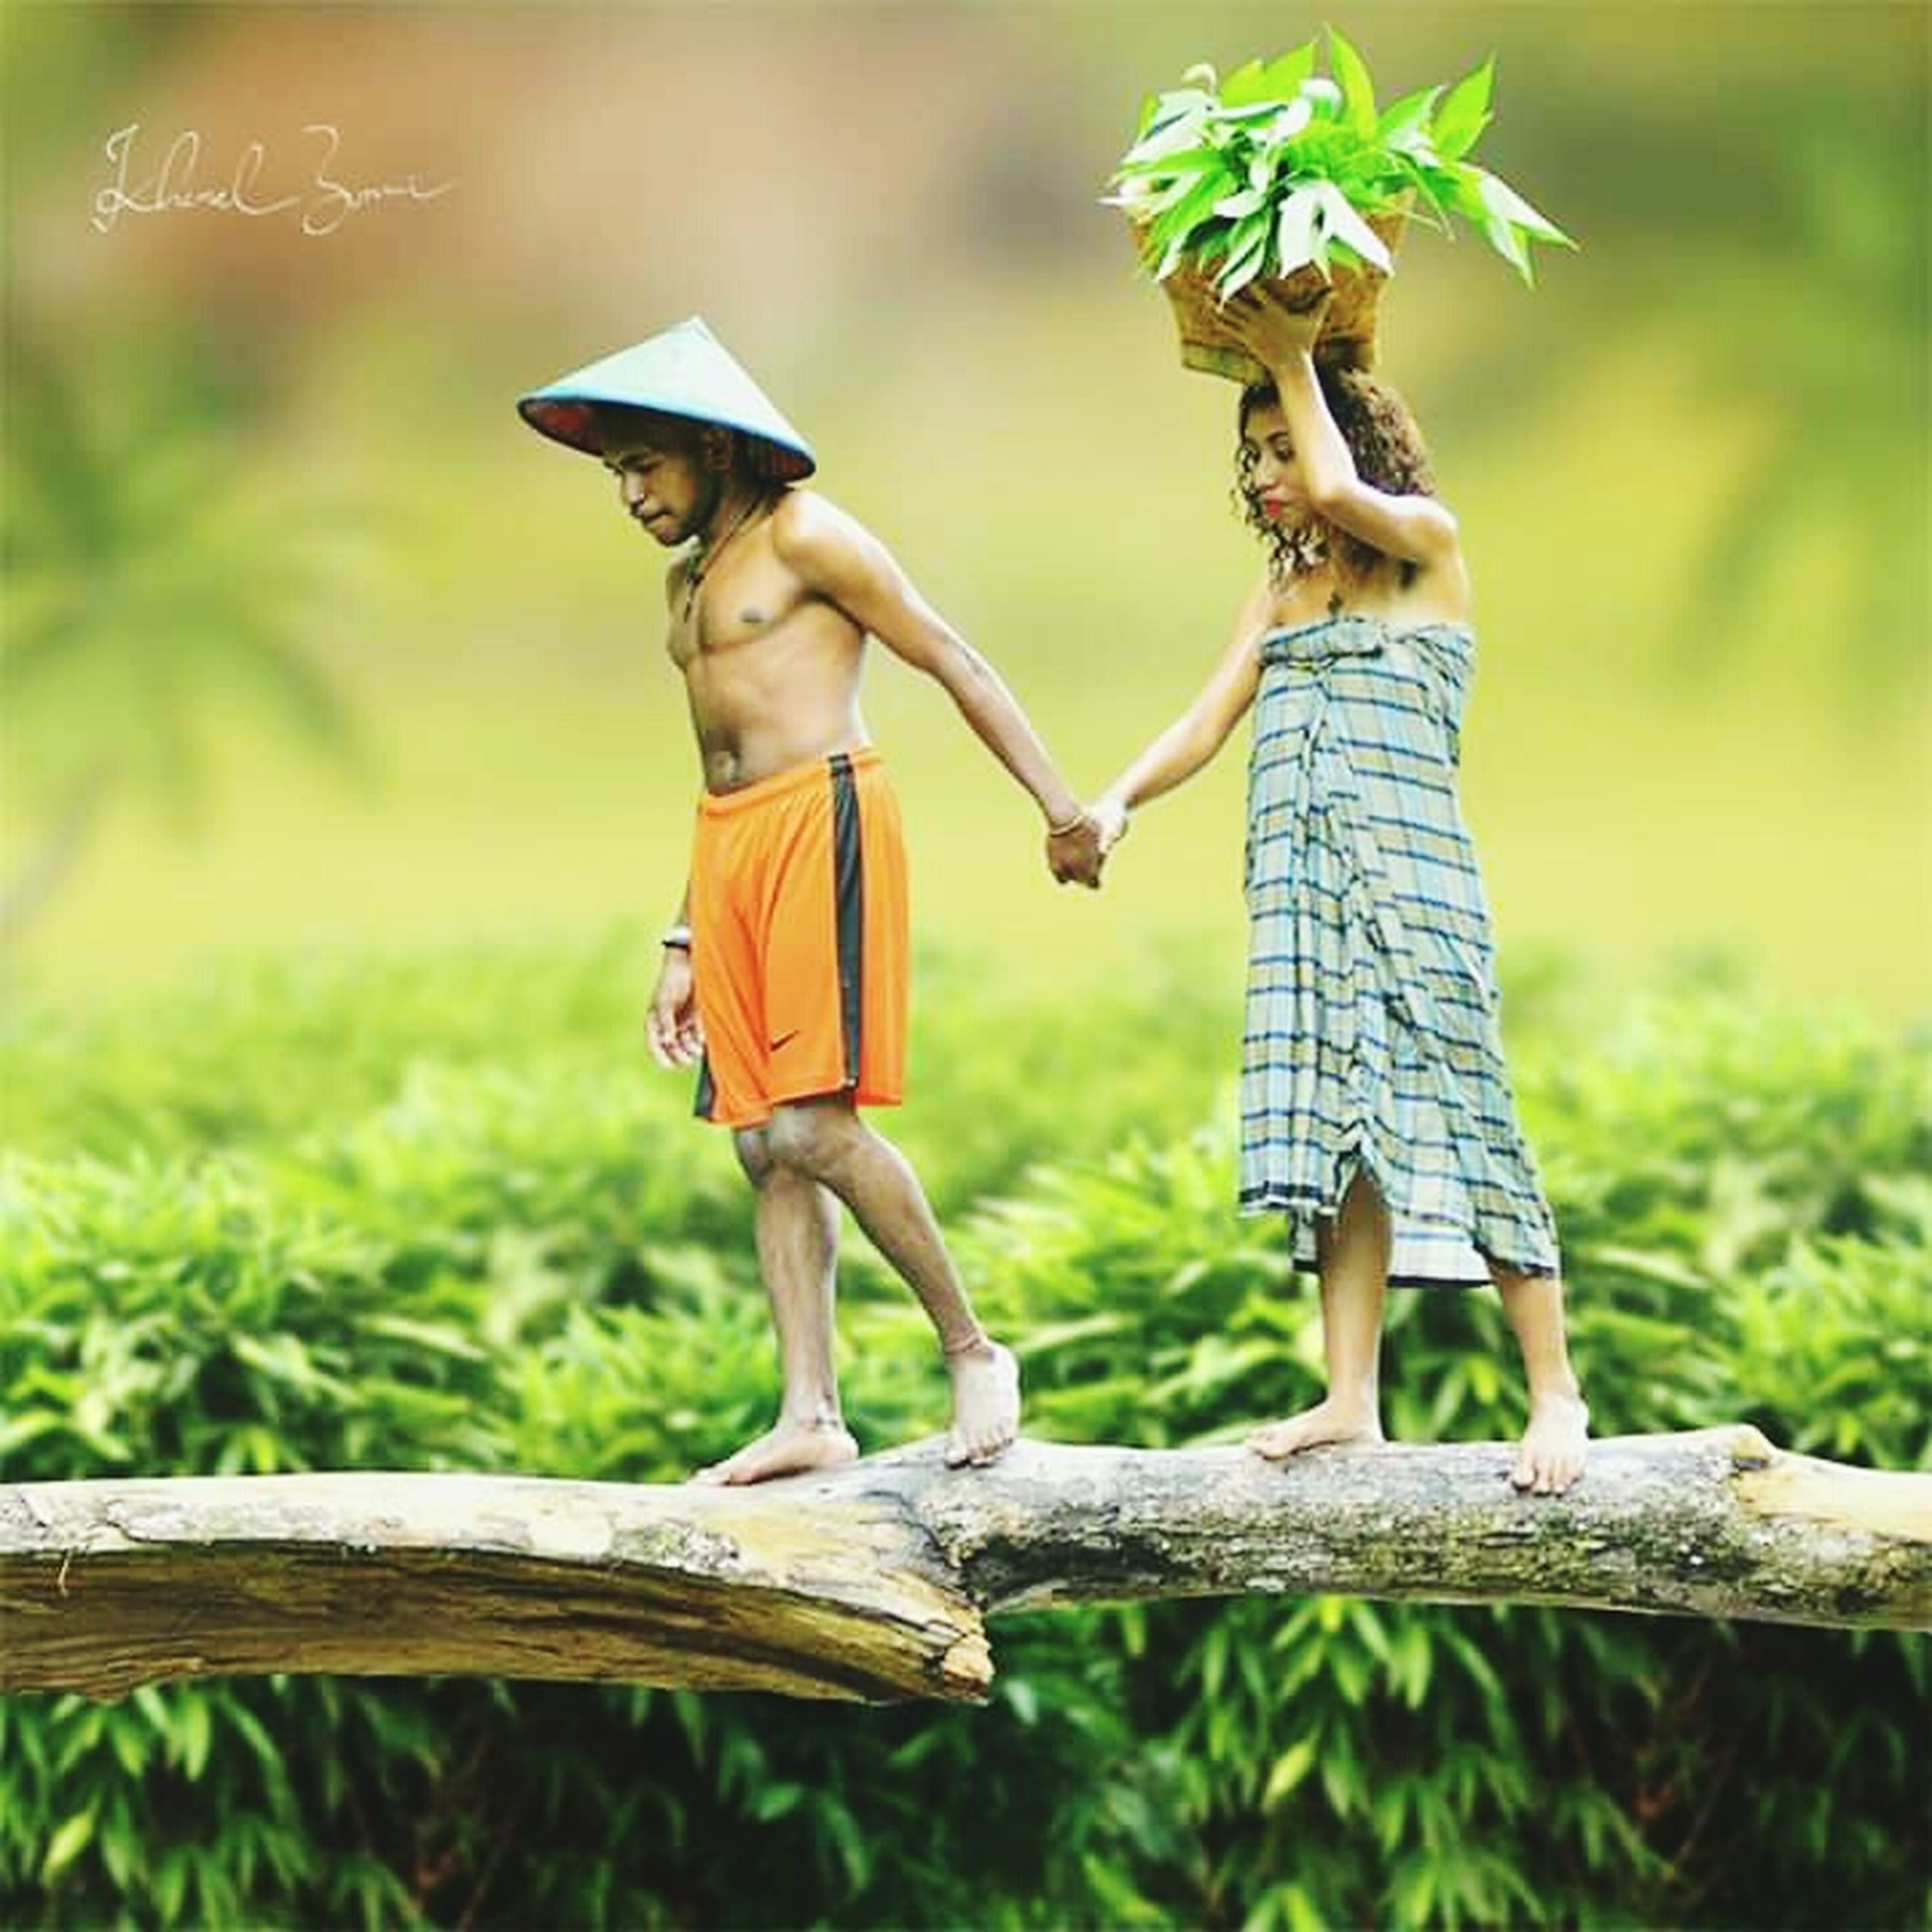 two people, plant, childhood, child, nature, togetherness, full length, standing, men, males, offspring, people, grass, boys, side view, day, casual clothing, women, holding, bonding, outdoors